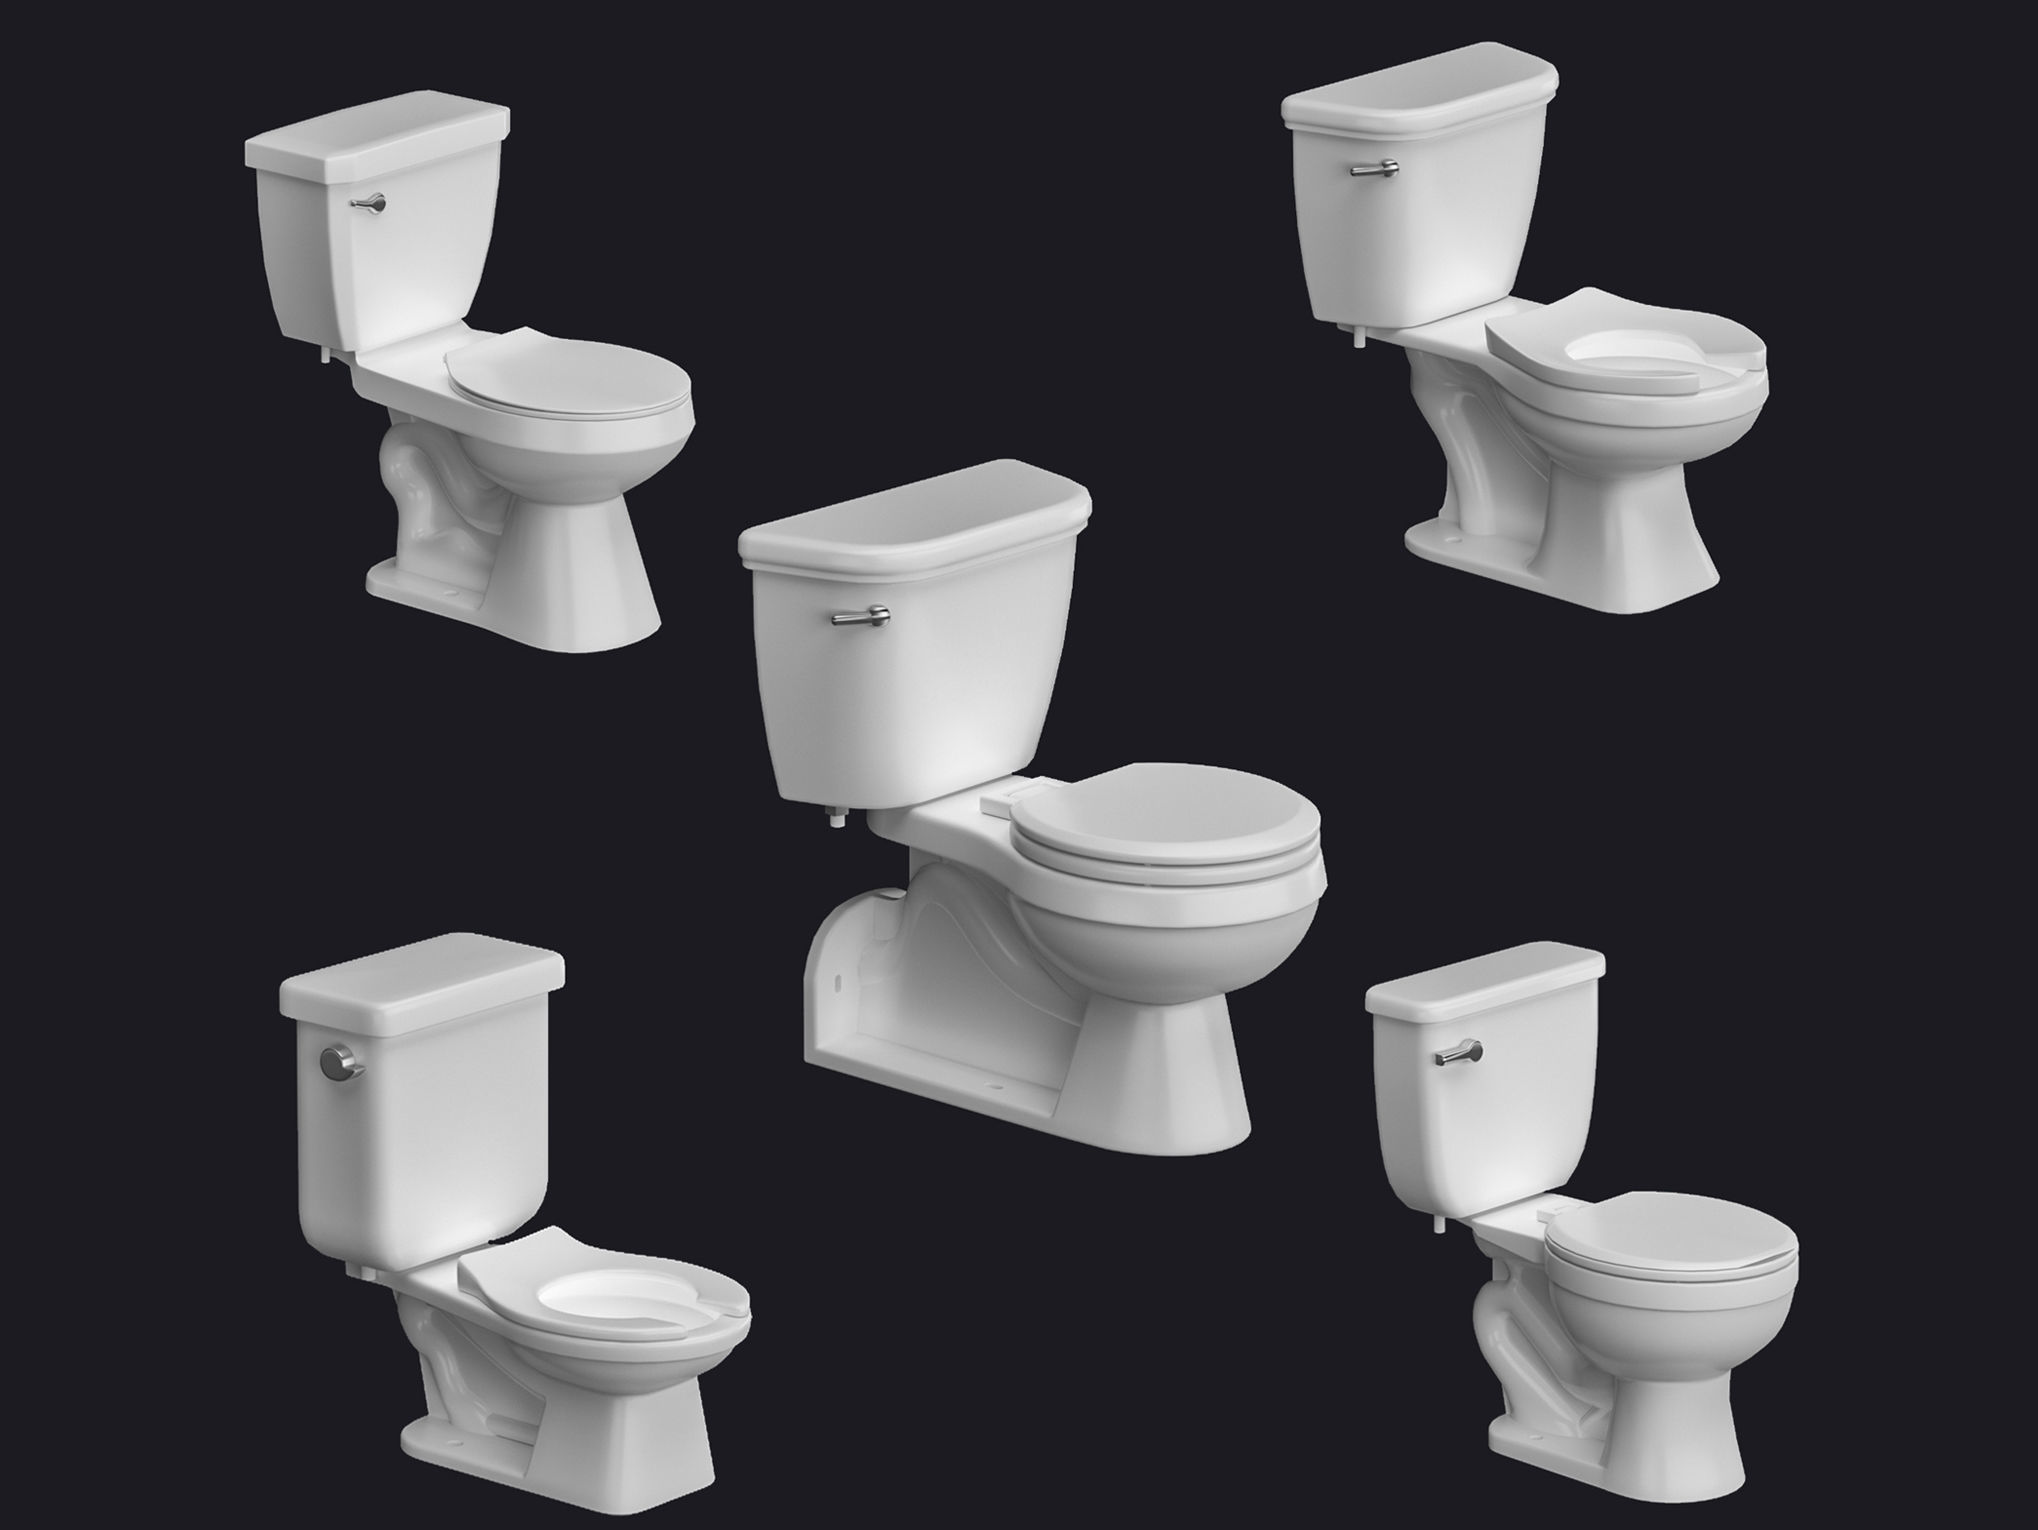 5 Toilet bowls and flash tanks